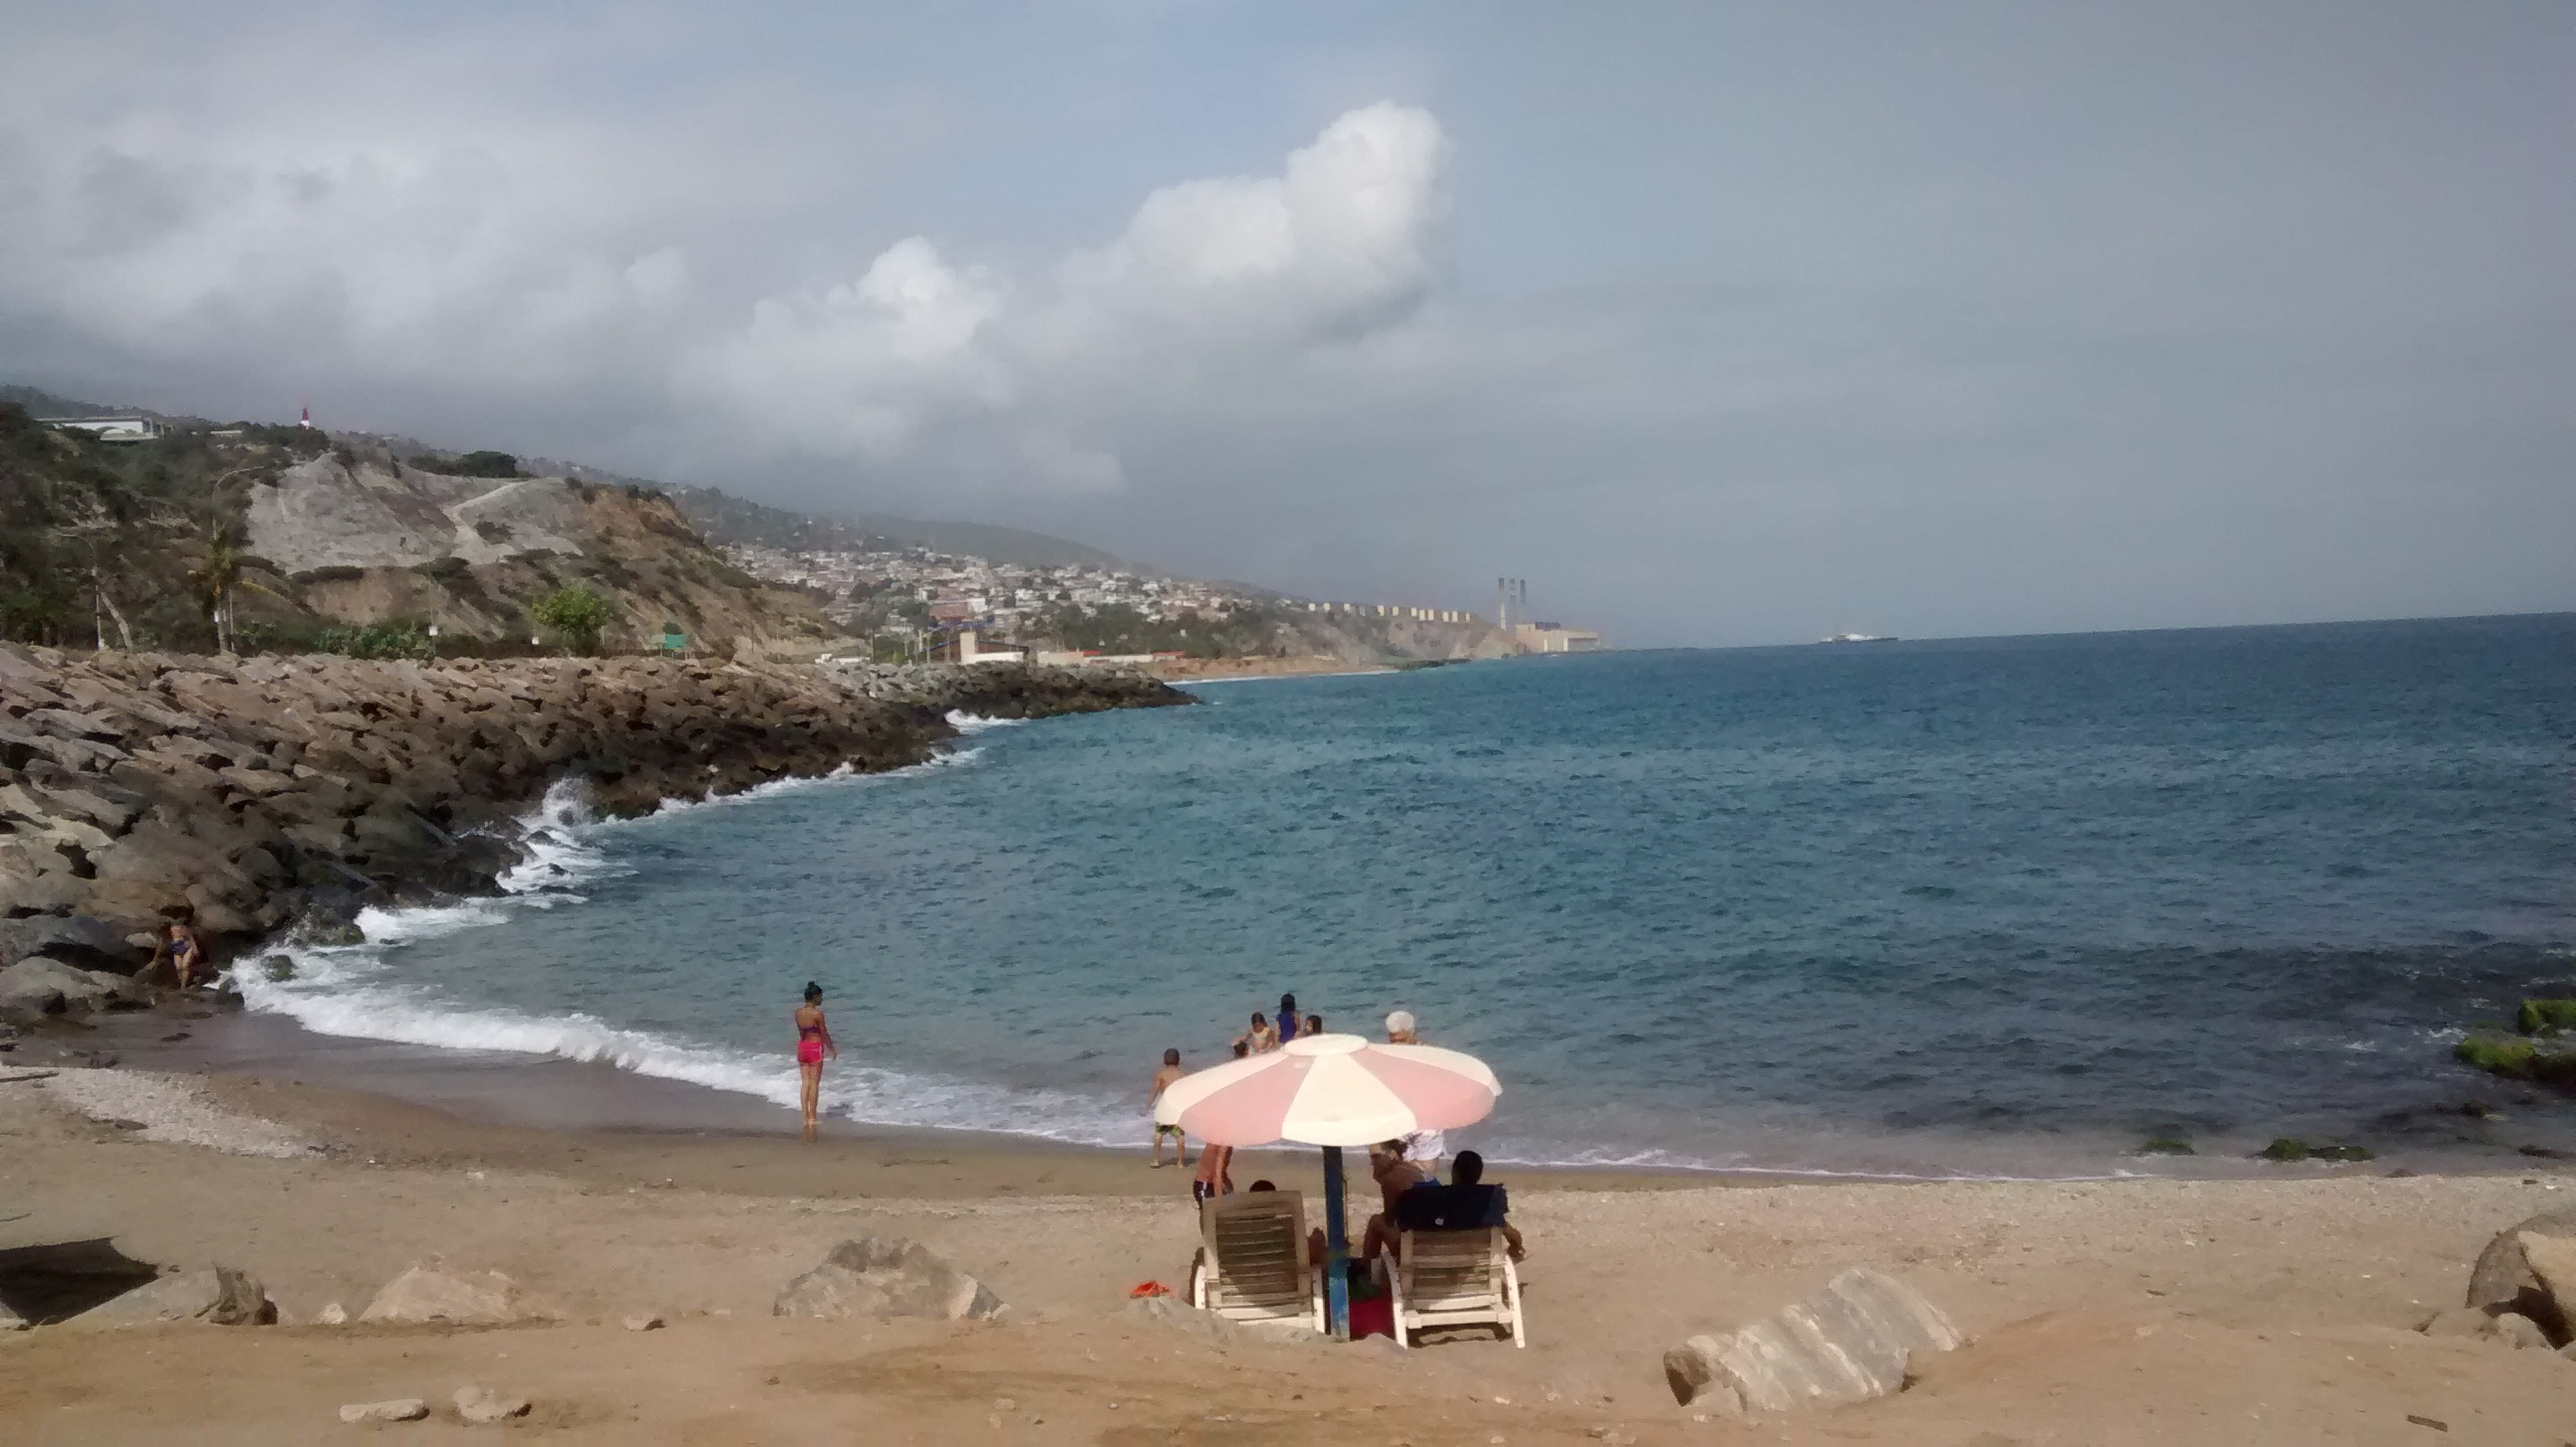 The beach at La Guaira, Vargas, Venezuela.